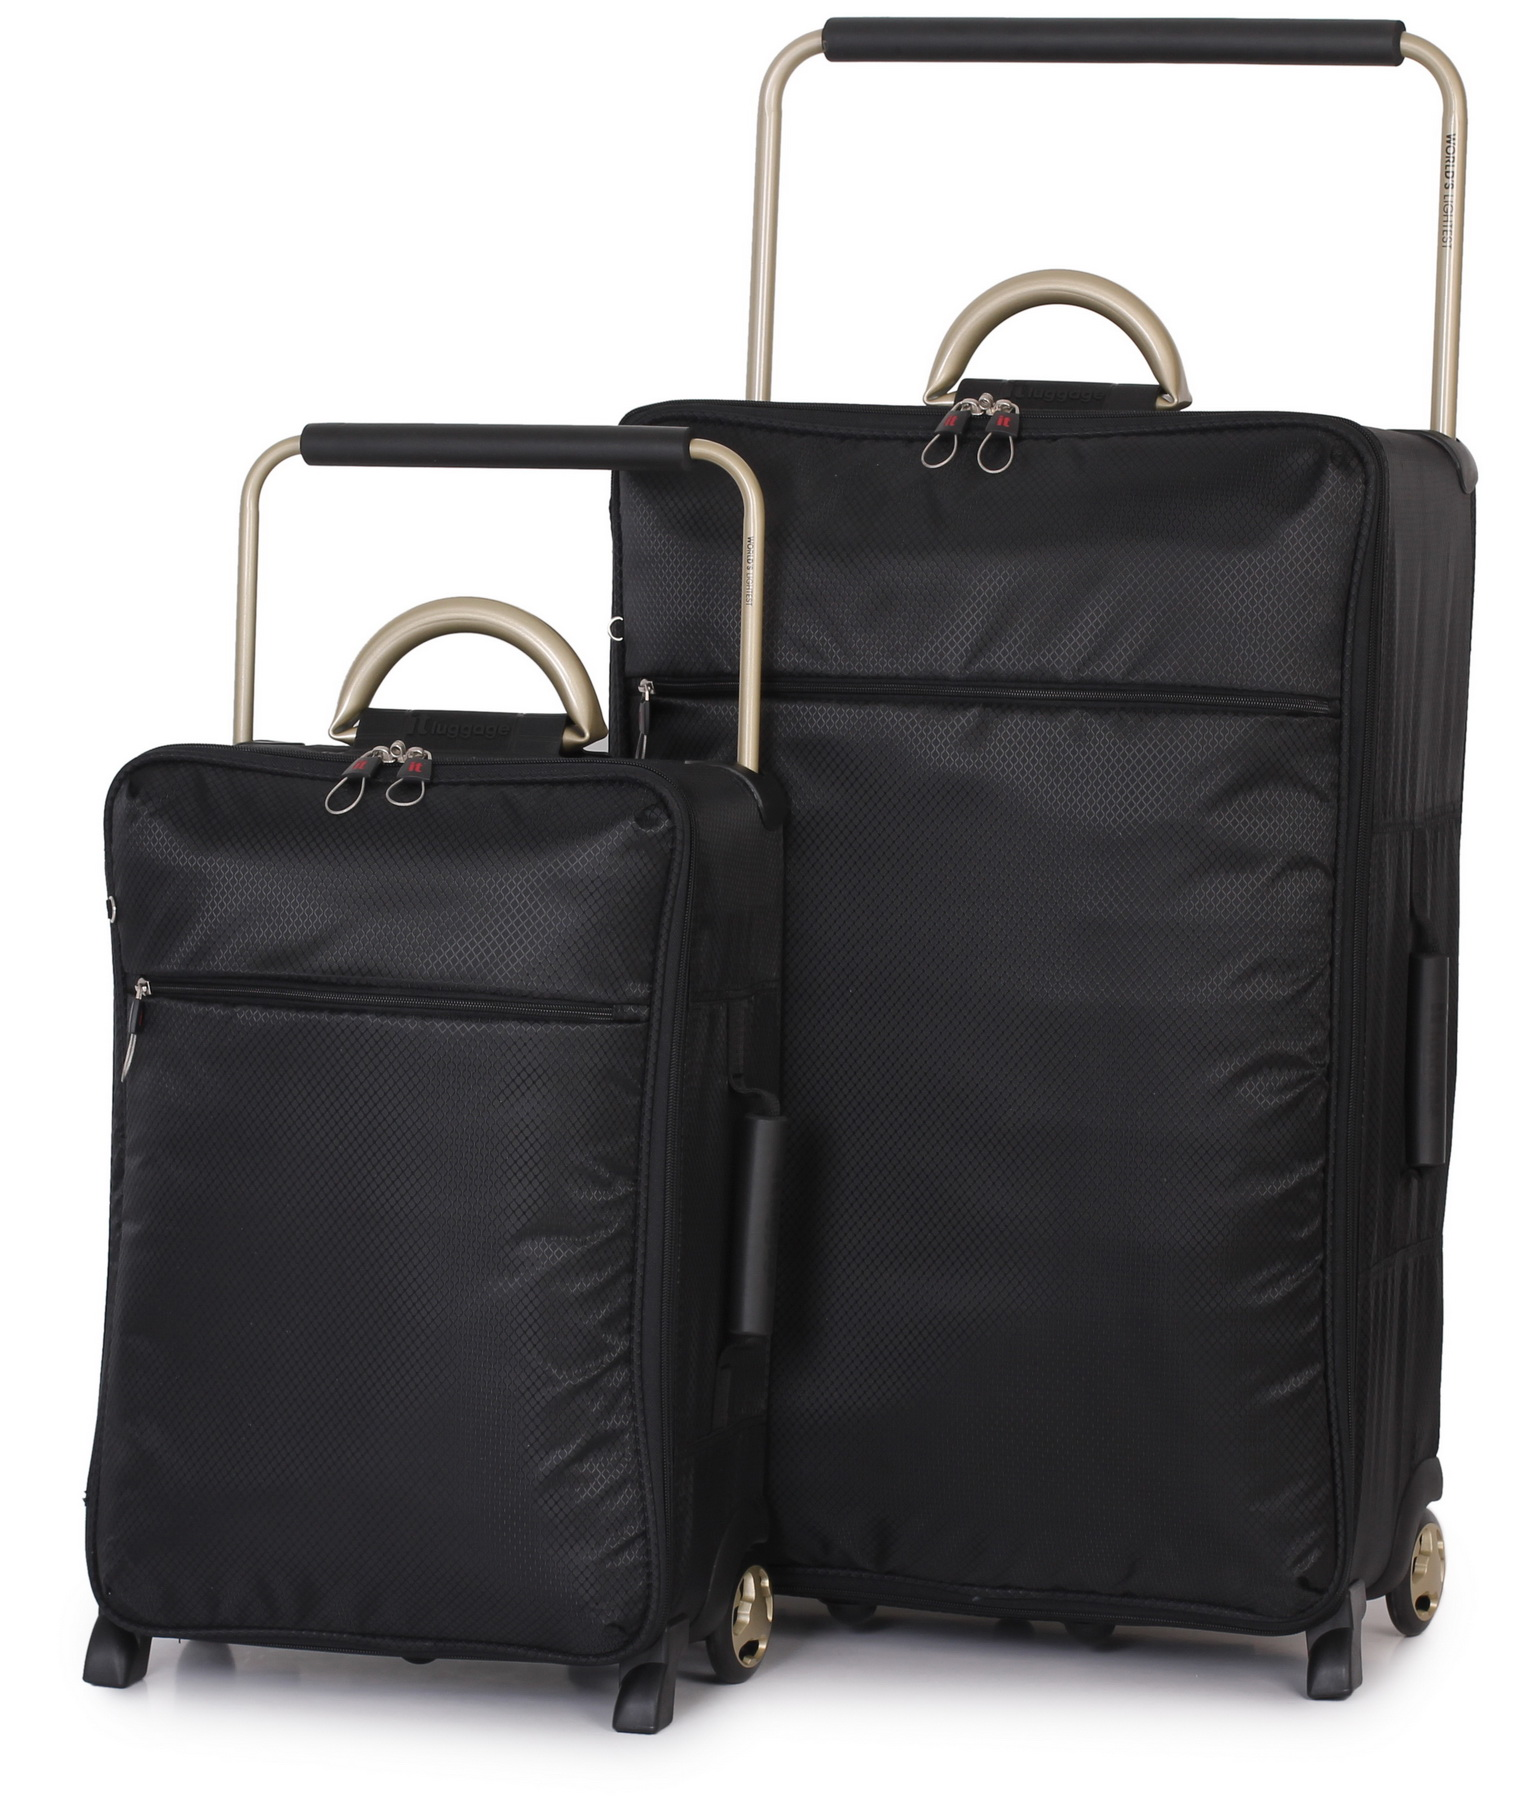 IT Luggage Reviews - ProductReview.com.au